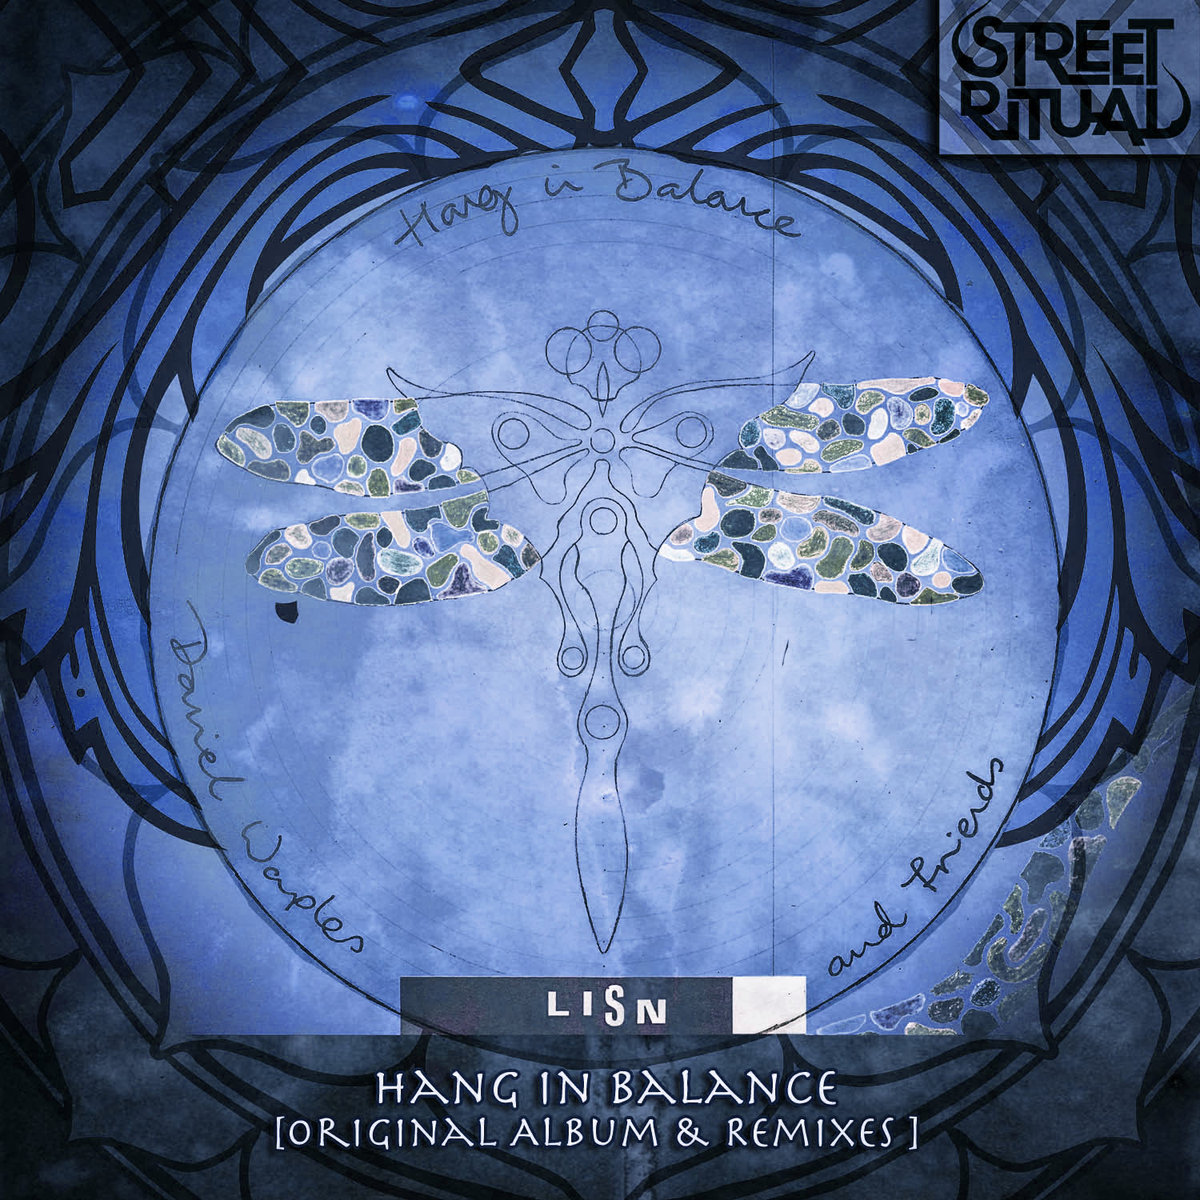 Hang in Balance - Yankade @ 'Lisn (Remixes & Originals)' album (bass, daniel waples)